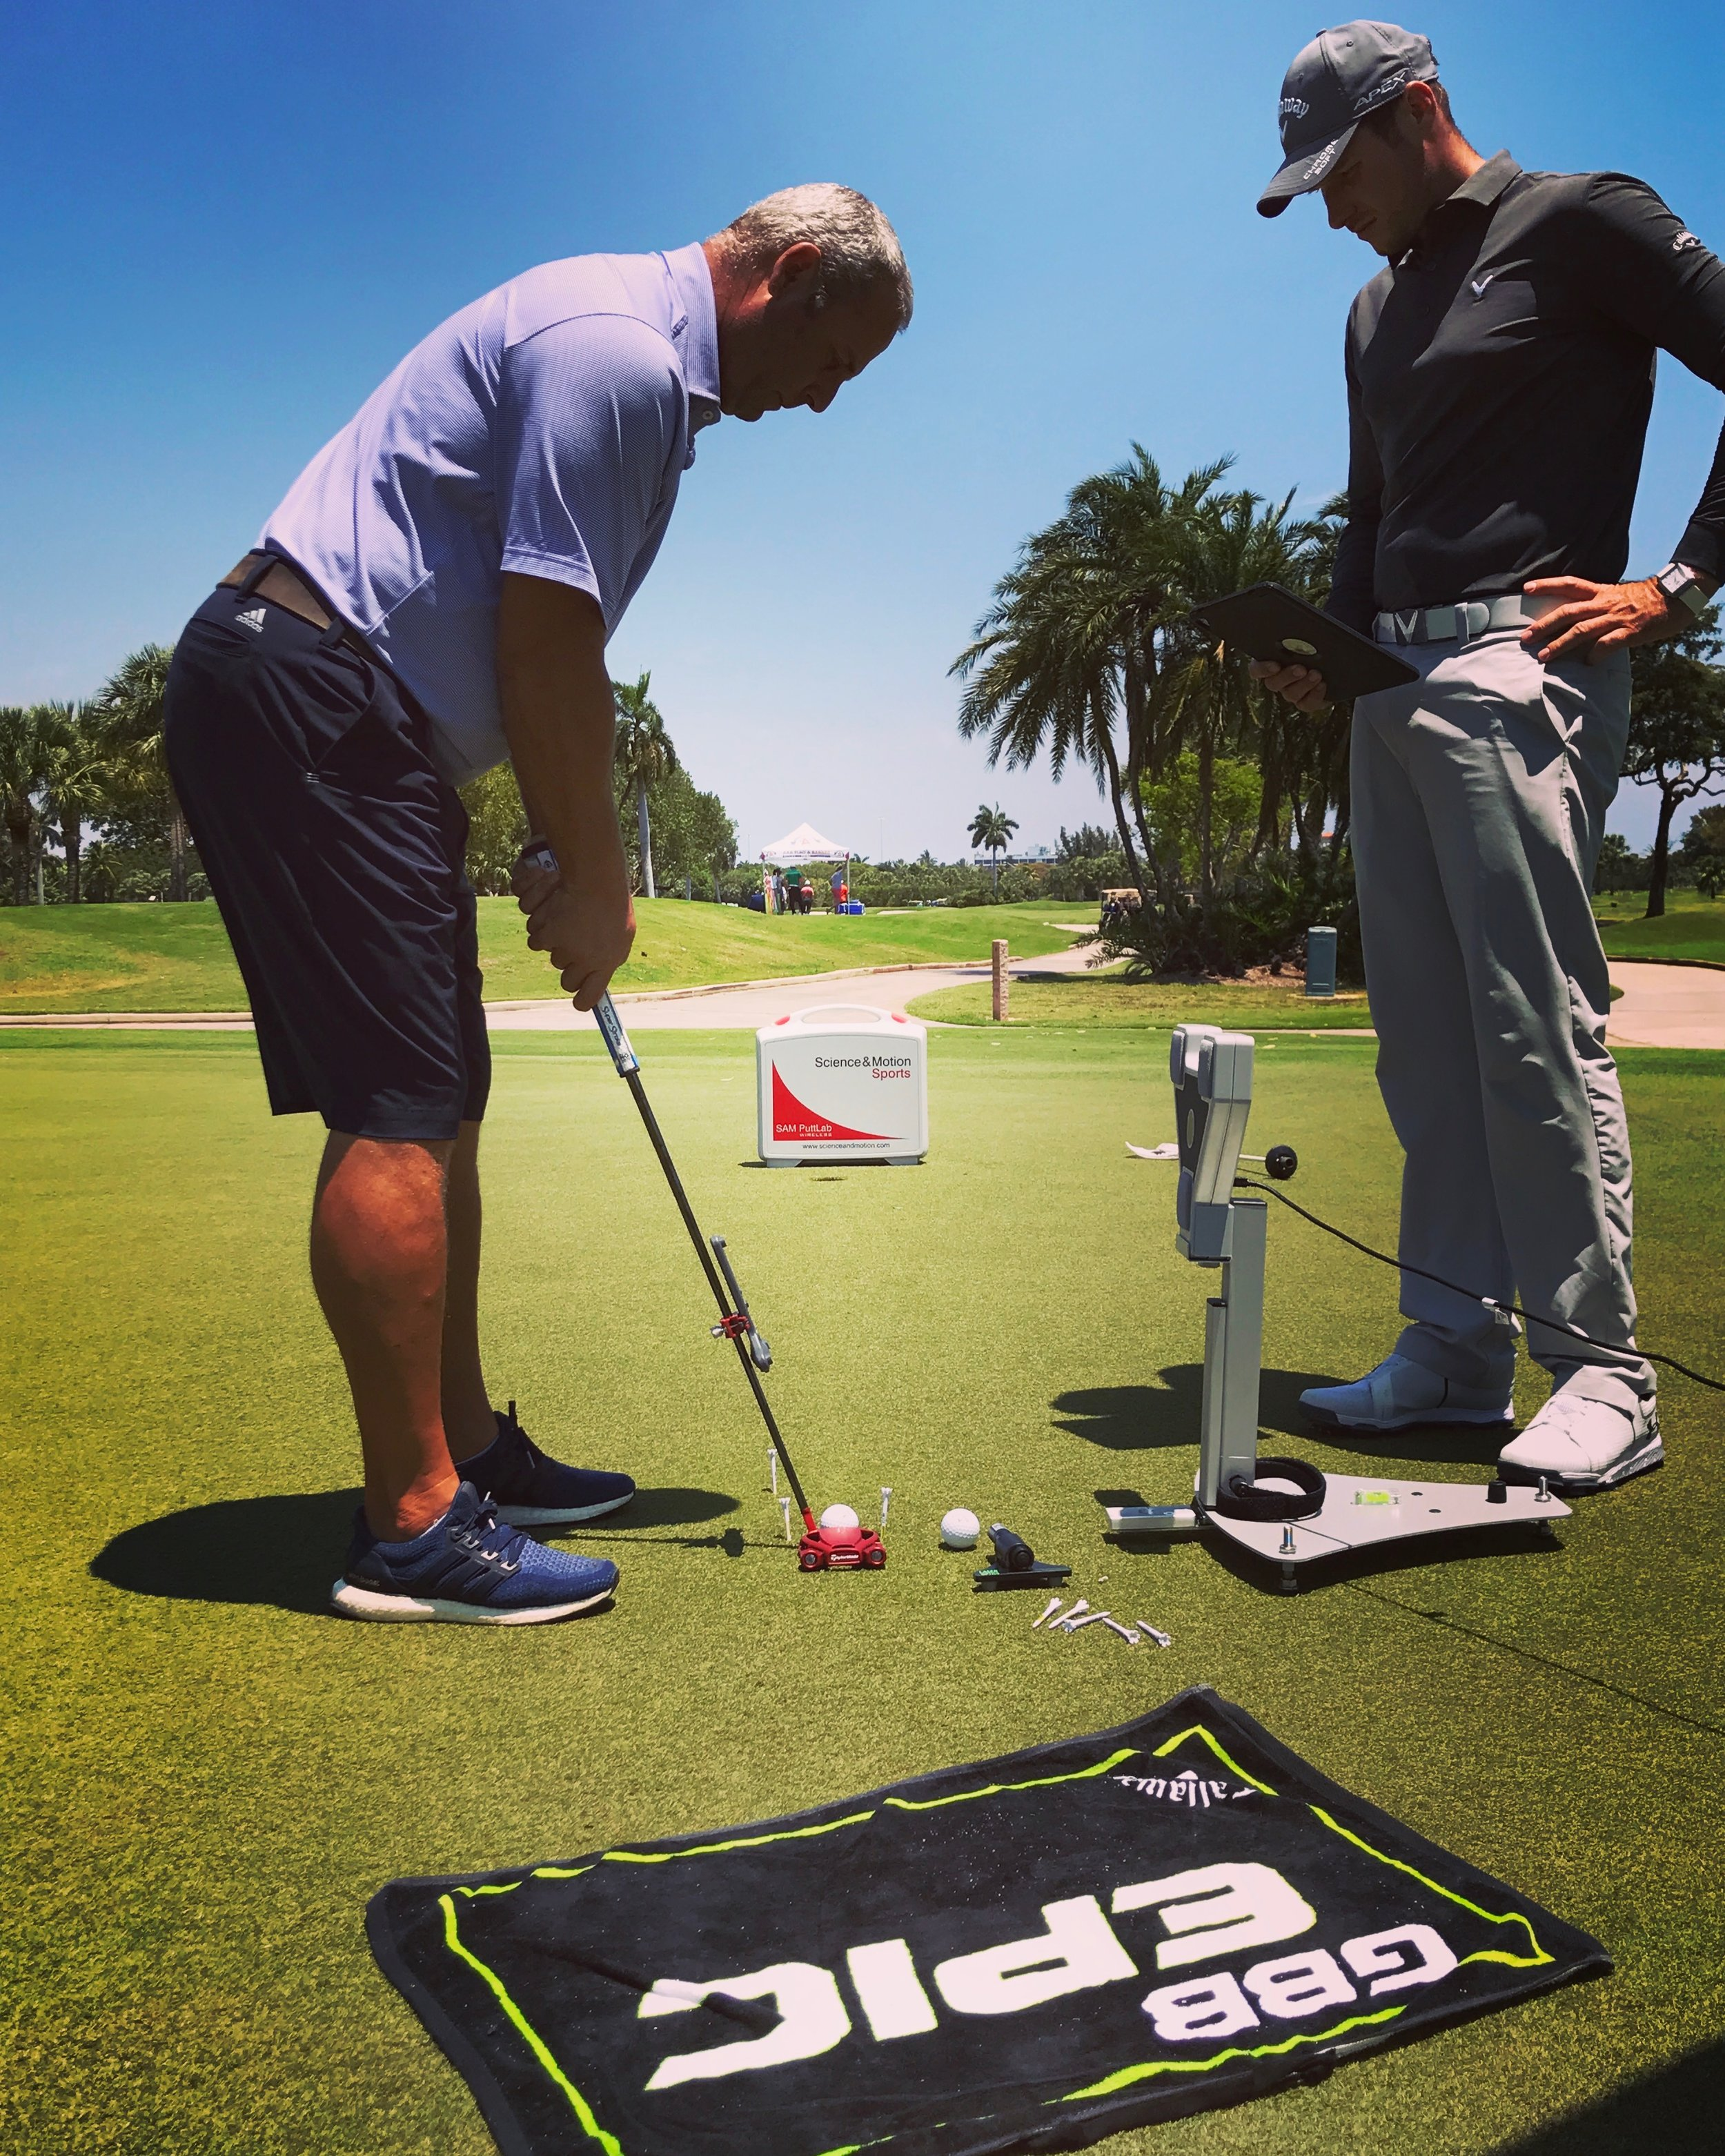 3 DAY PRO SESSION EXPERIENCE - This program is designed for the golfer looking for multiple days of instruction while still getting lots of on-course play everyday. Program consists of 12 hours with your instructor- 3 hours on instruction each day from 9-12-Lunch with your instructor-Play 9 holes after lunch on your ownFor an additional cost, you can continue playing the full 18 and even have your instructor join you for on course playing lesson for the 9 or 18 holesFully customization program: Pick any available instructor and pick any days that work for your schedule.